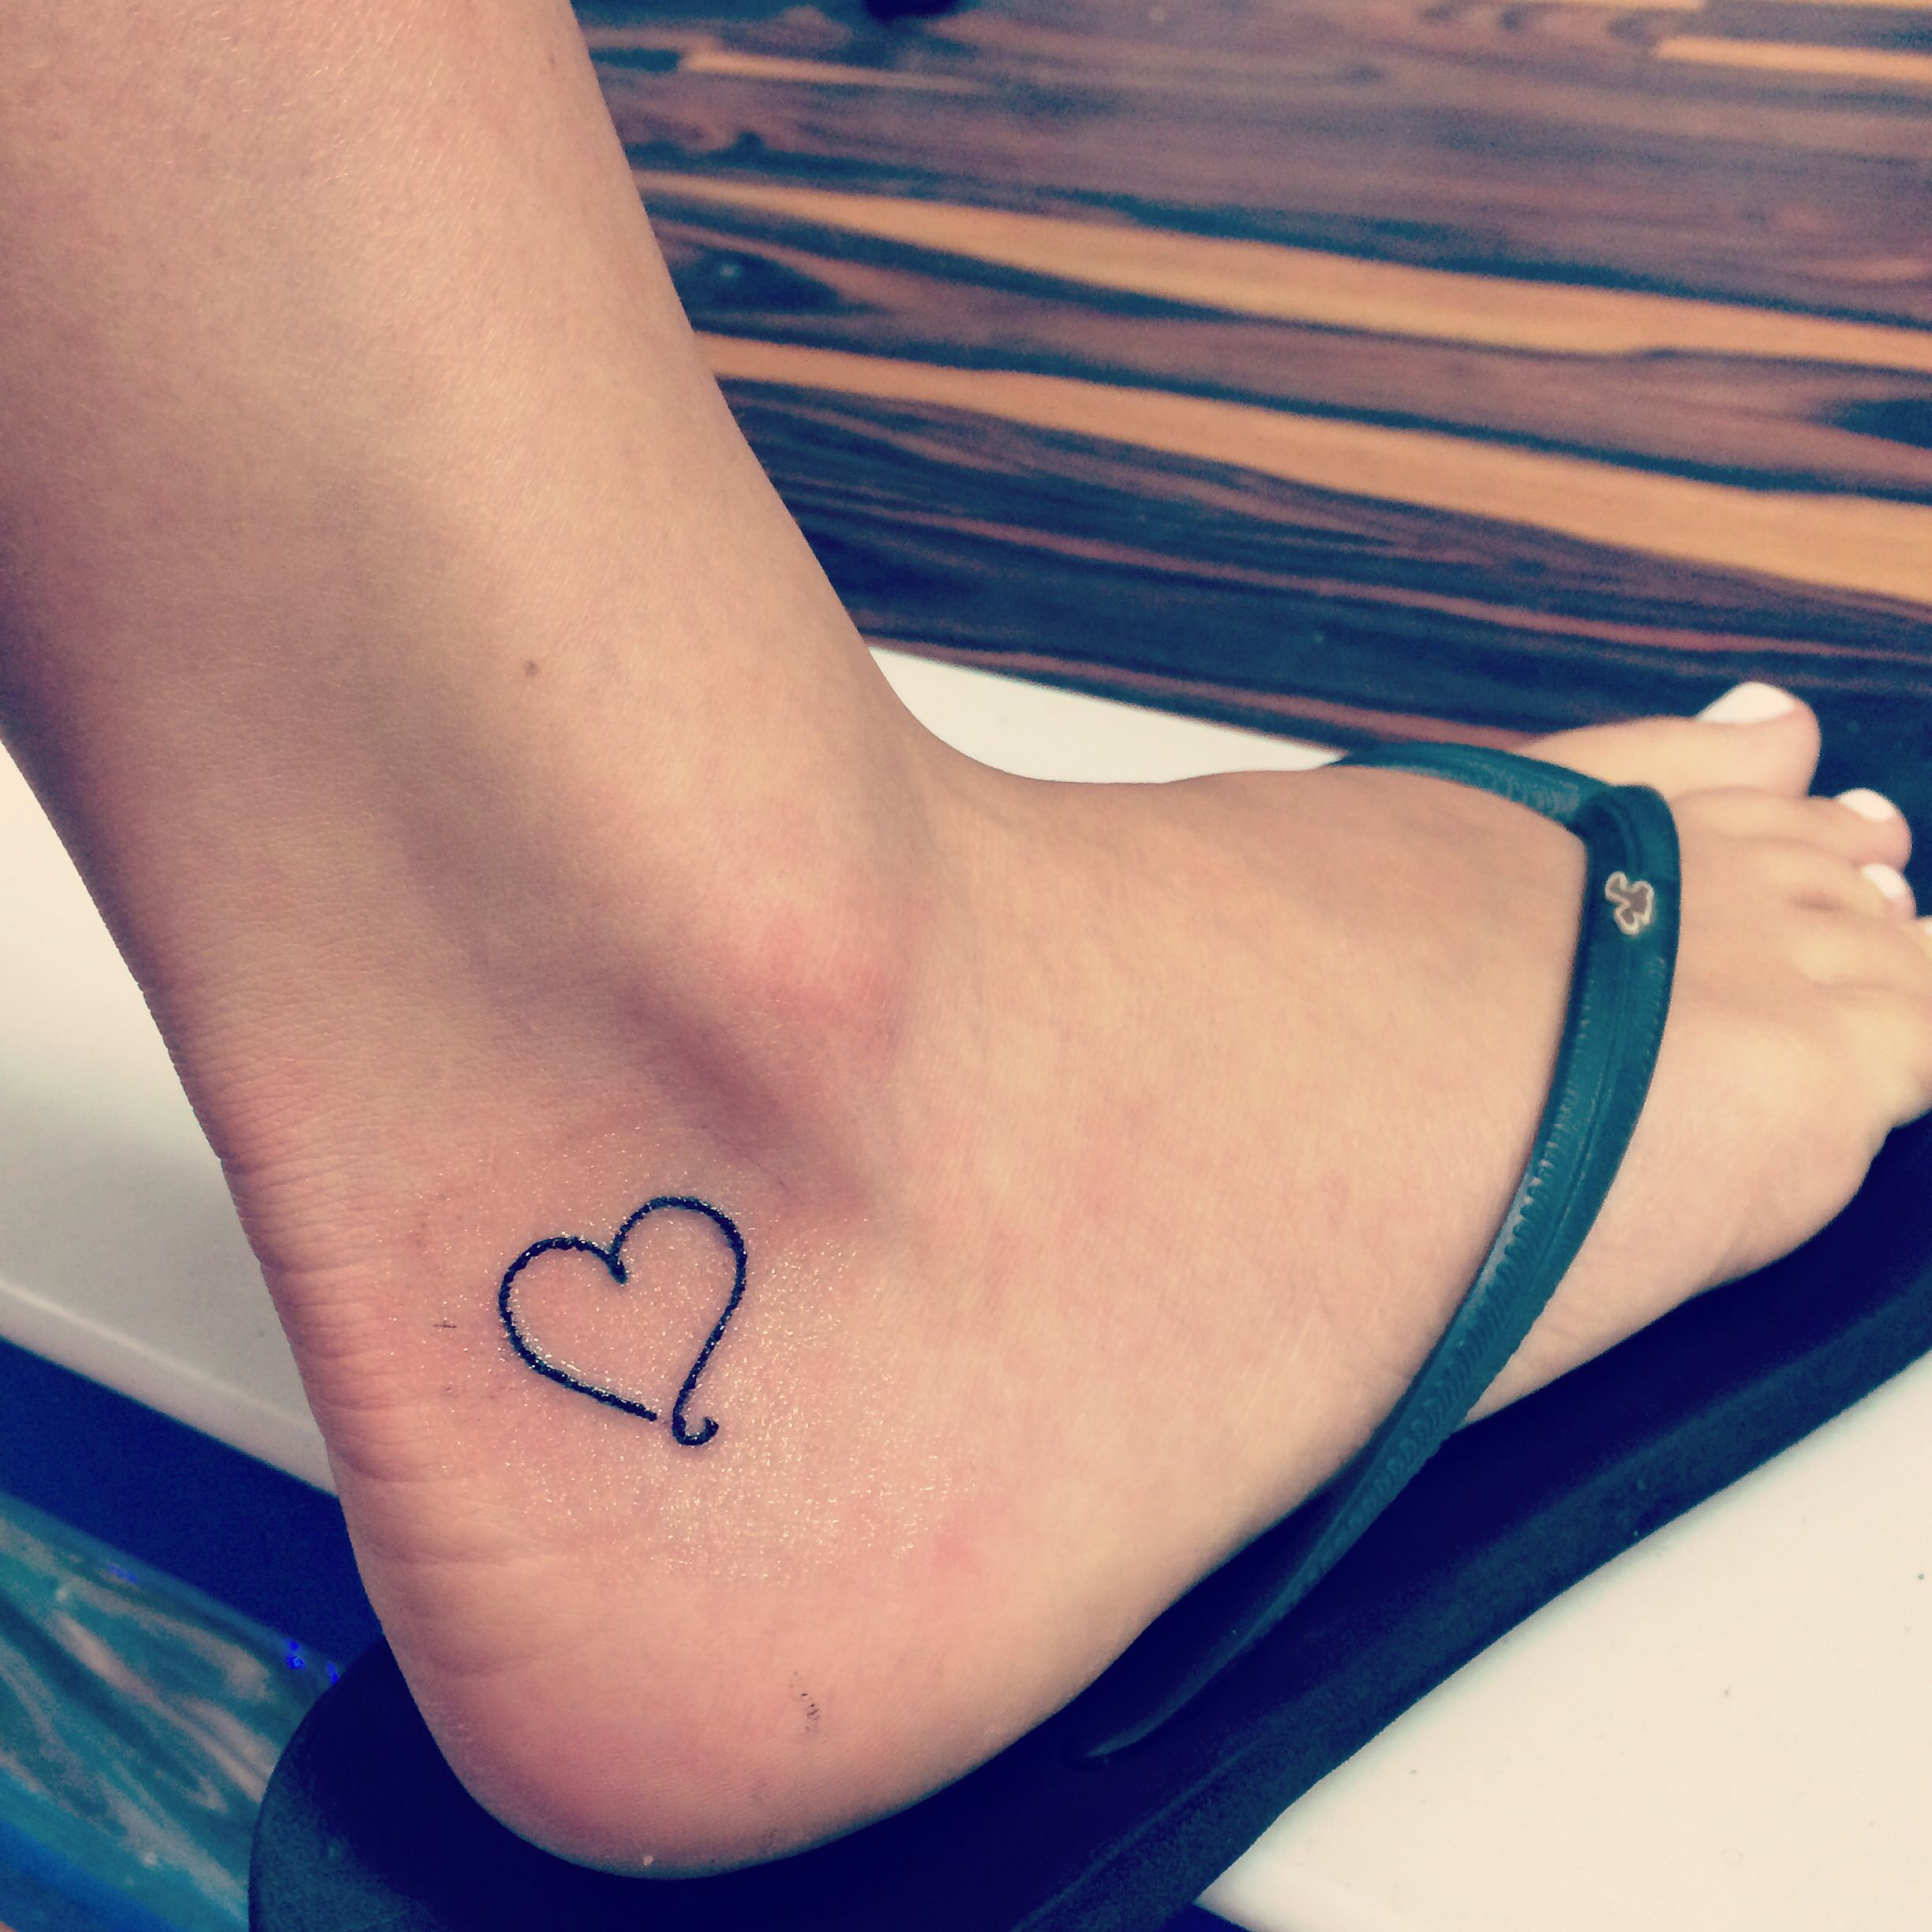 small heart ankle tattoo tattoo ideas pinterest ankle tattoos ankle and tattoo. Black Bedroom Furniture Sets. Home Design Ideas